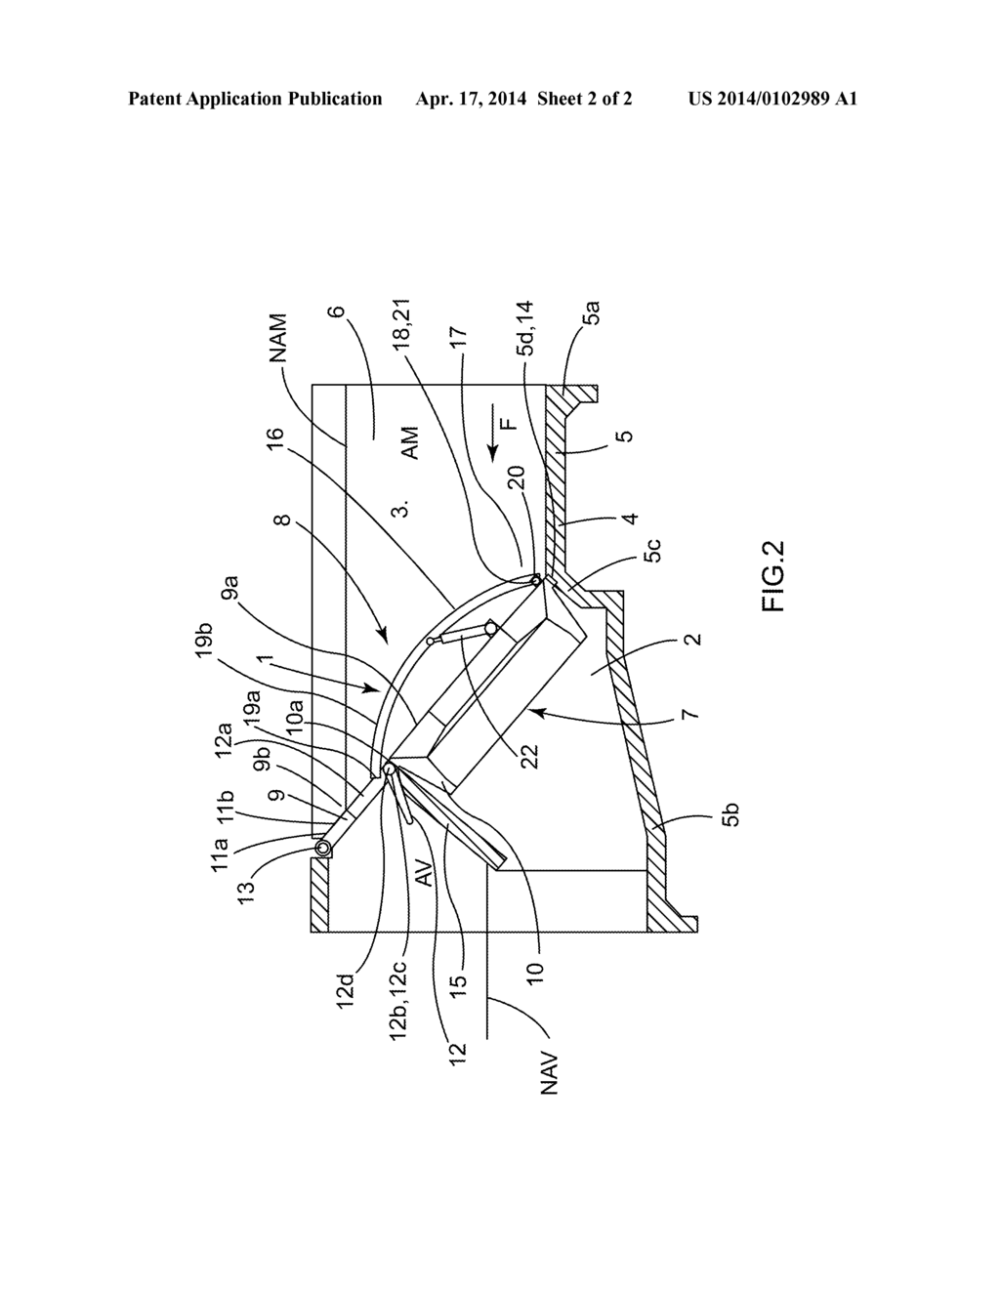 medium resolution of hydro electric power plant comprising a grating assembly for taking water into the turbine which is designed to discharge floating debris stopped by the